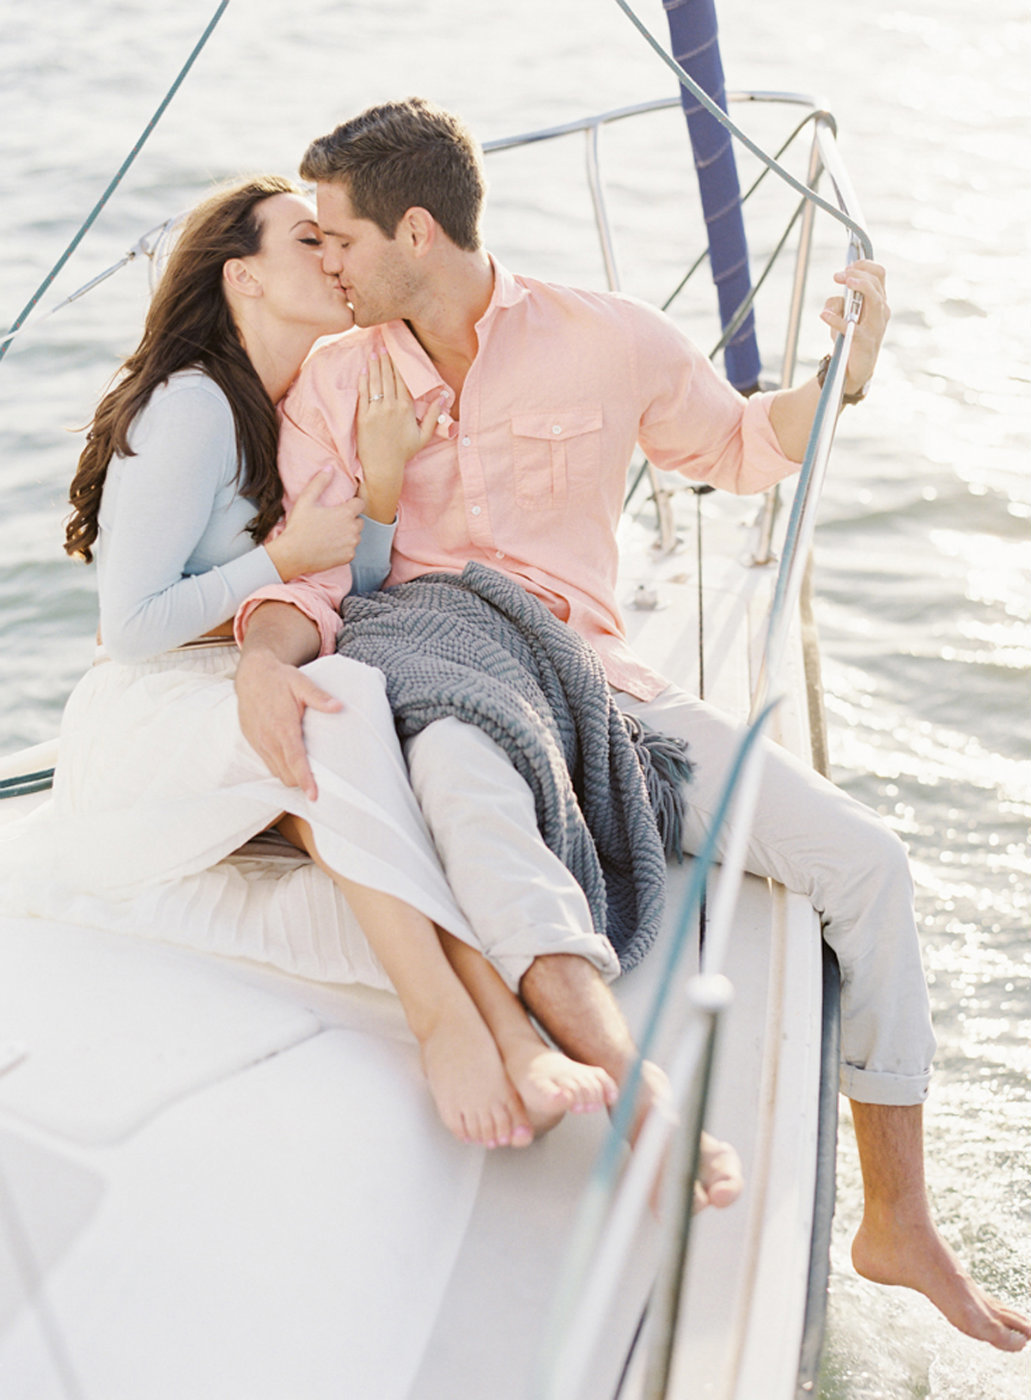 kayla_jon_vizcaya_sailboat_engagement_melanie_gabrielle_photography_57